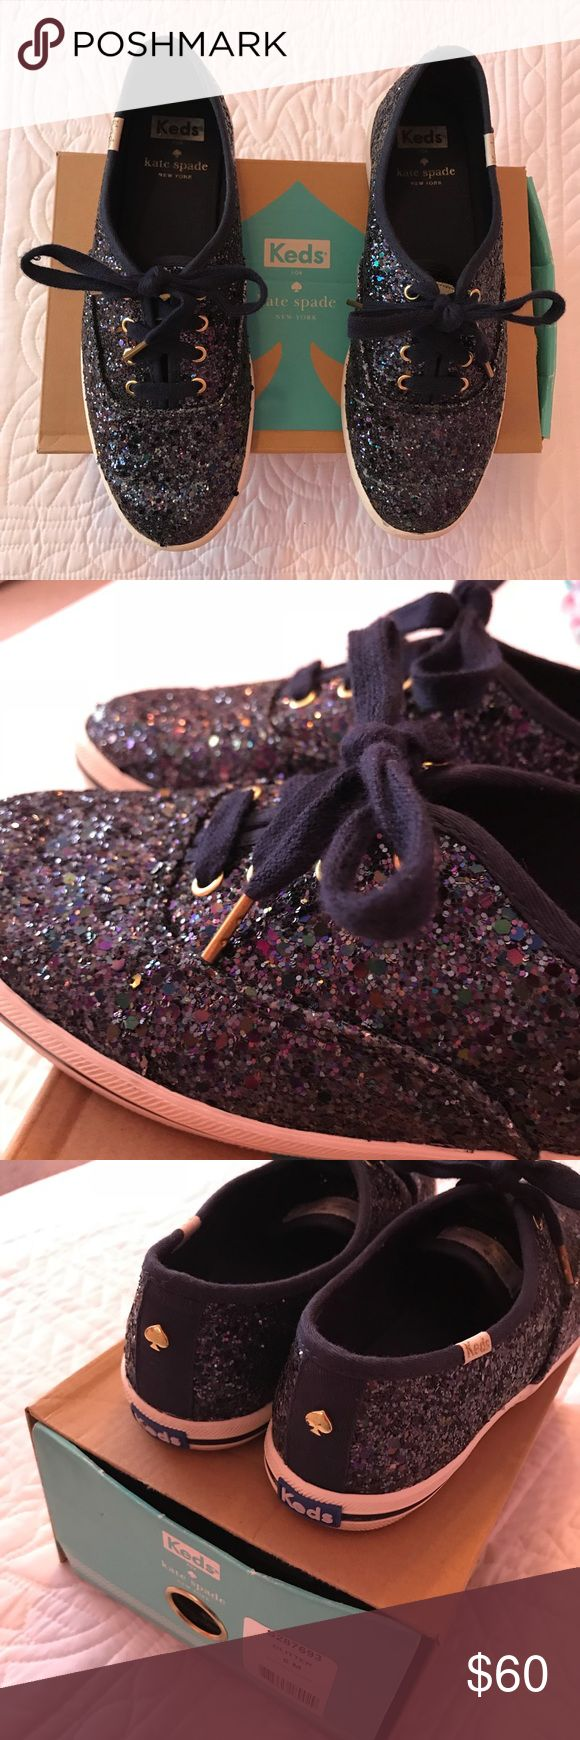 Kate Spade Navy blue glitter Keds sneakers Kate Spade Navy blue glitter Keds sneakers worn once looks new comes with navy blue silk laces too kate spade Shoes Sneakers